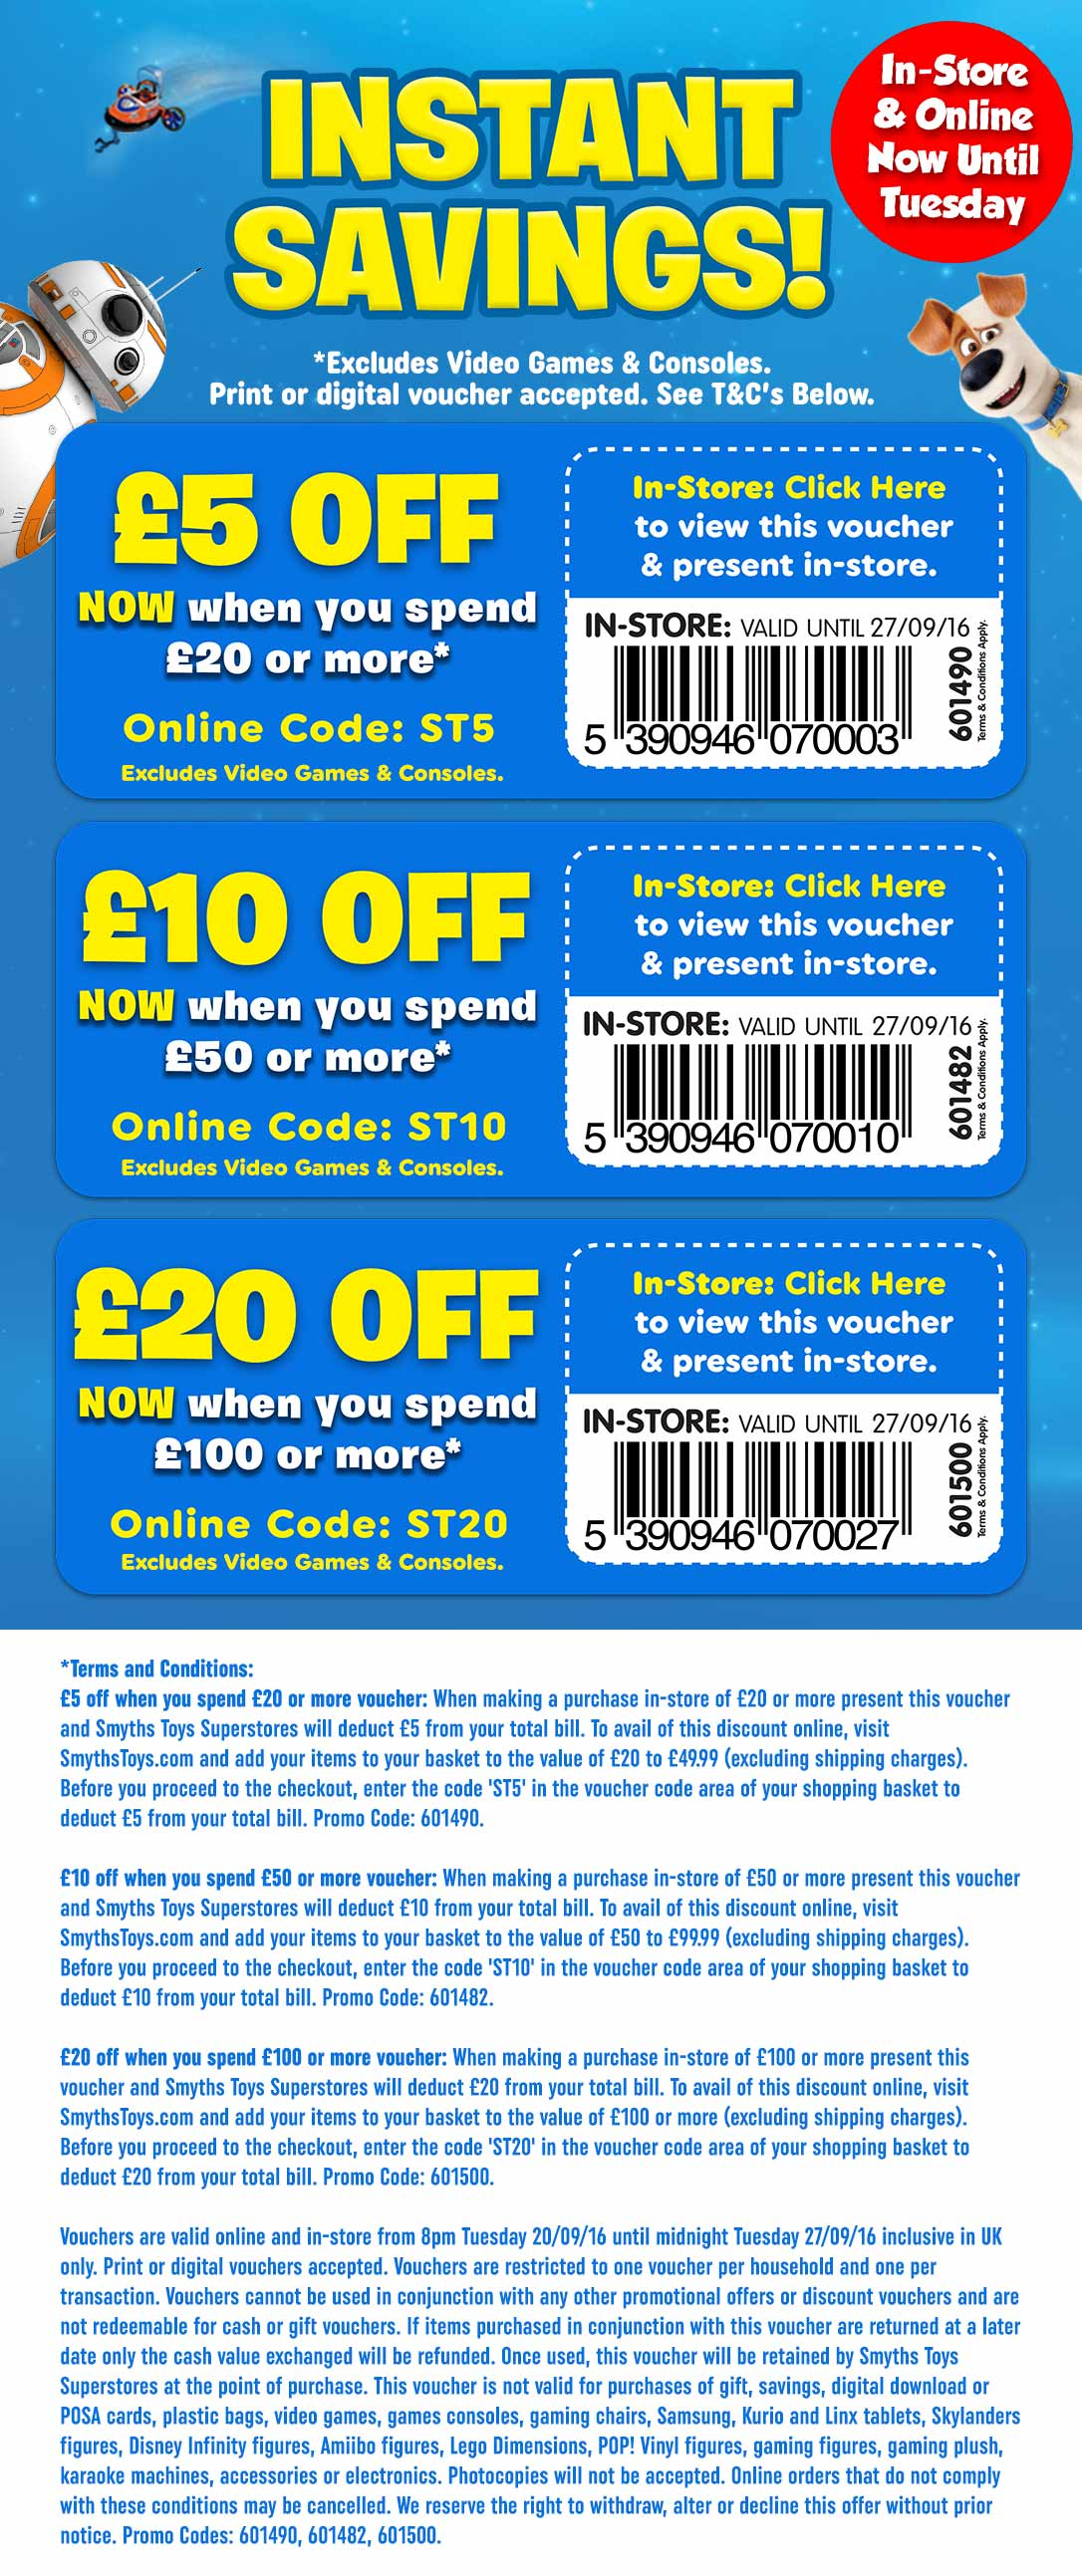 http://d2y16o6jimy36v.cloudfront.net/vouchers/Instant-Savings-Voucher-UK-20.09.16.jpg